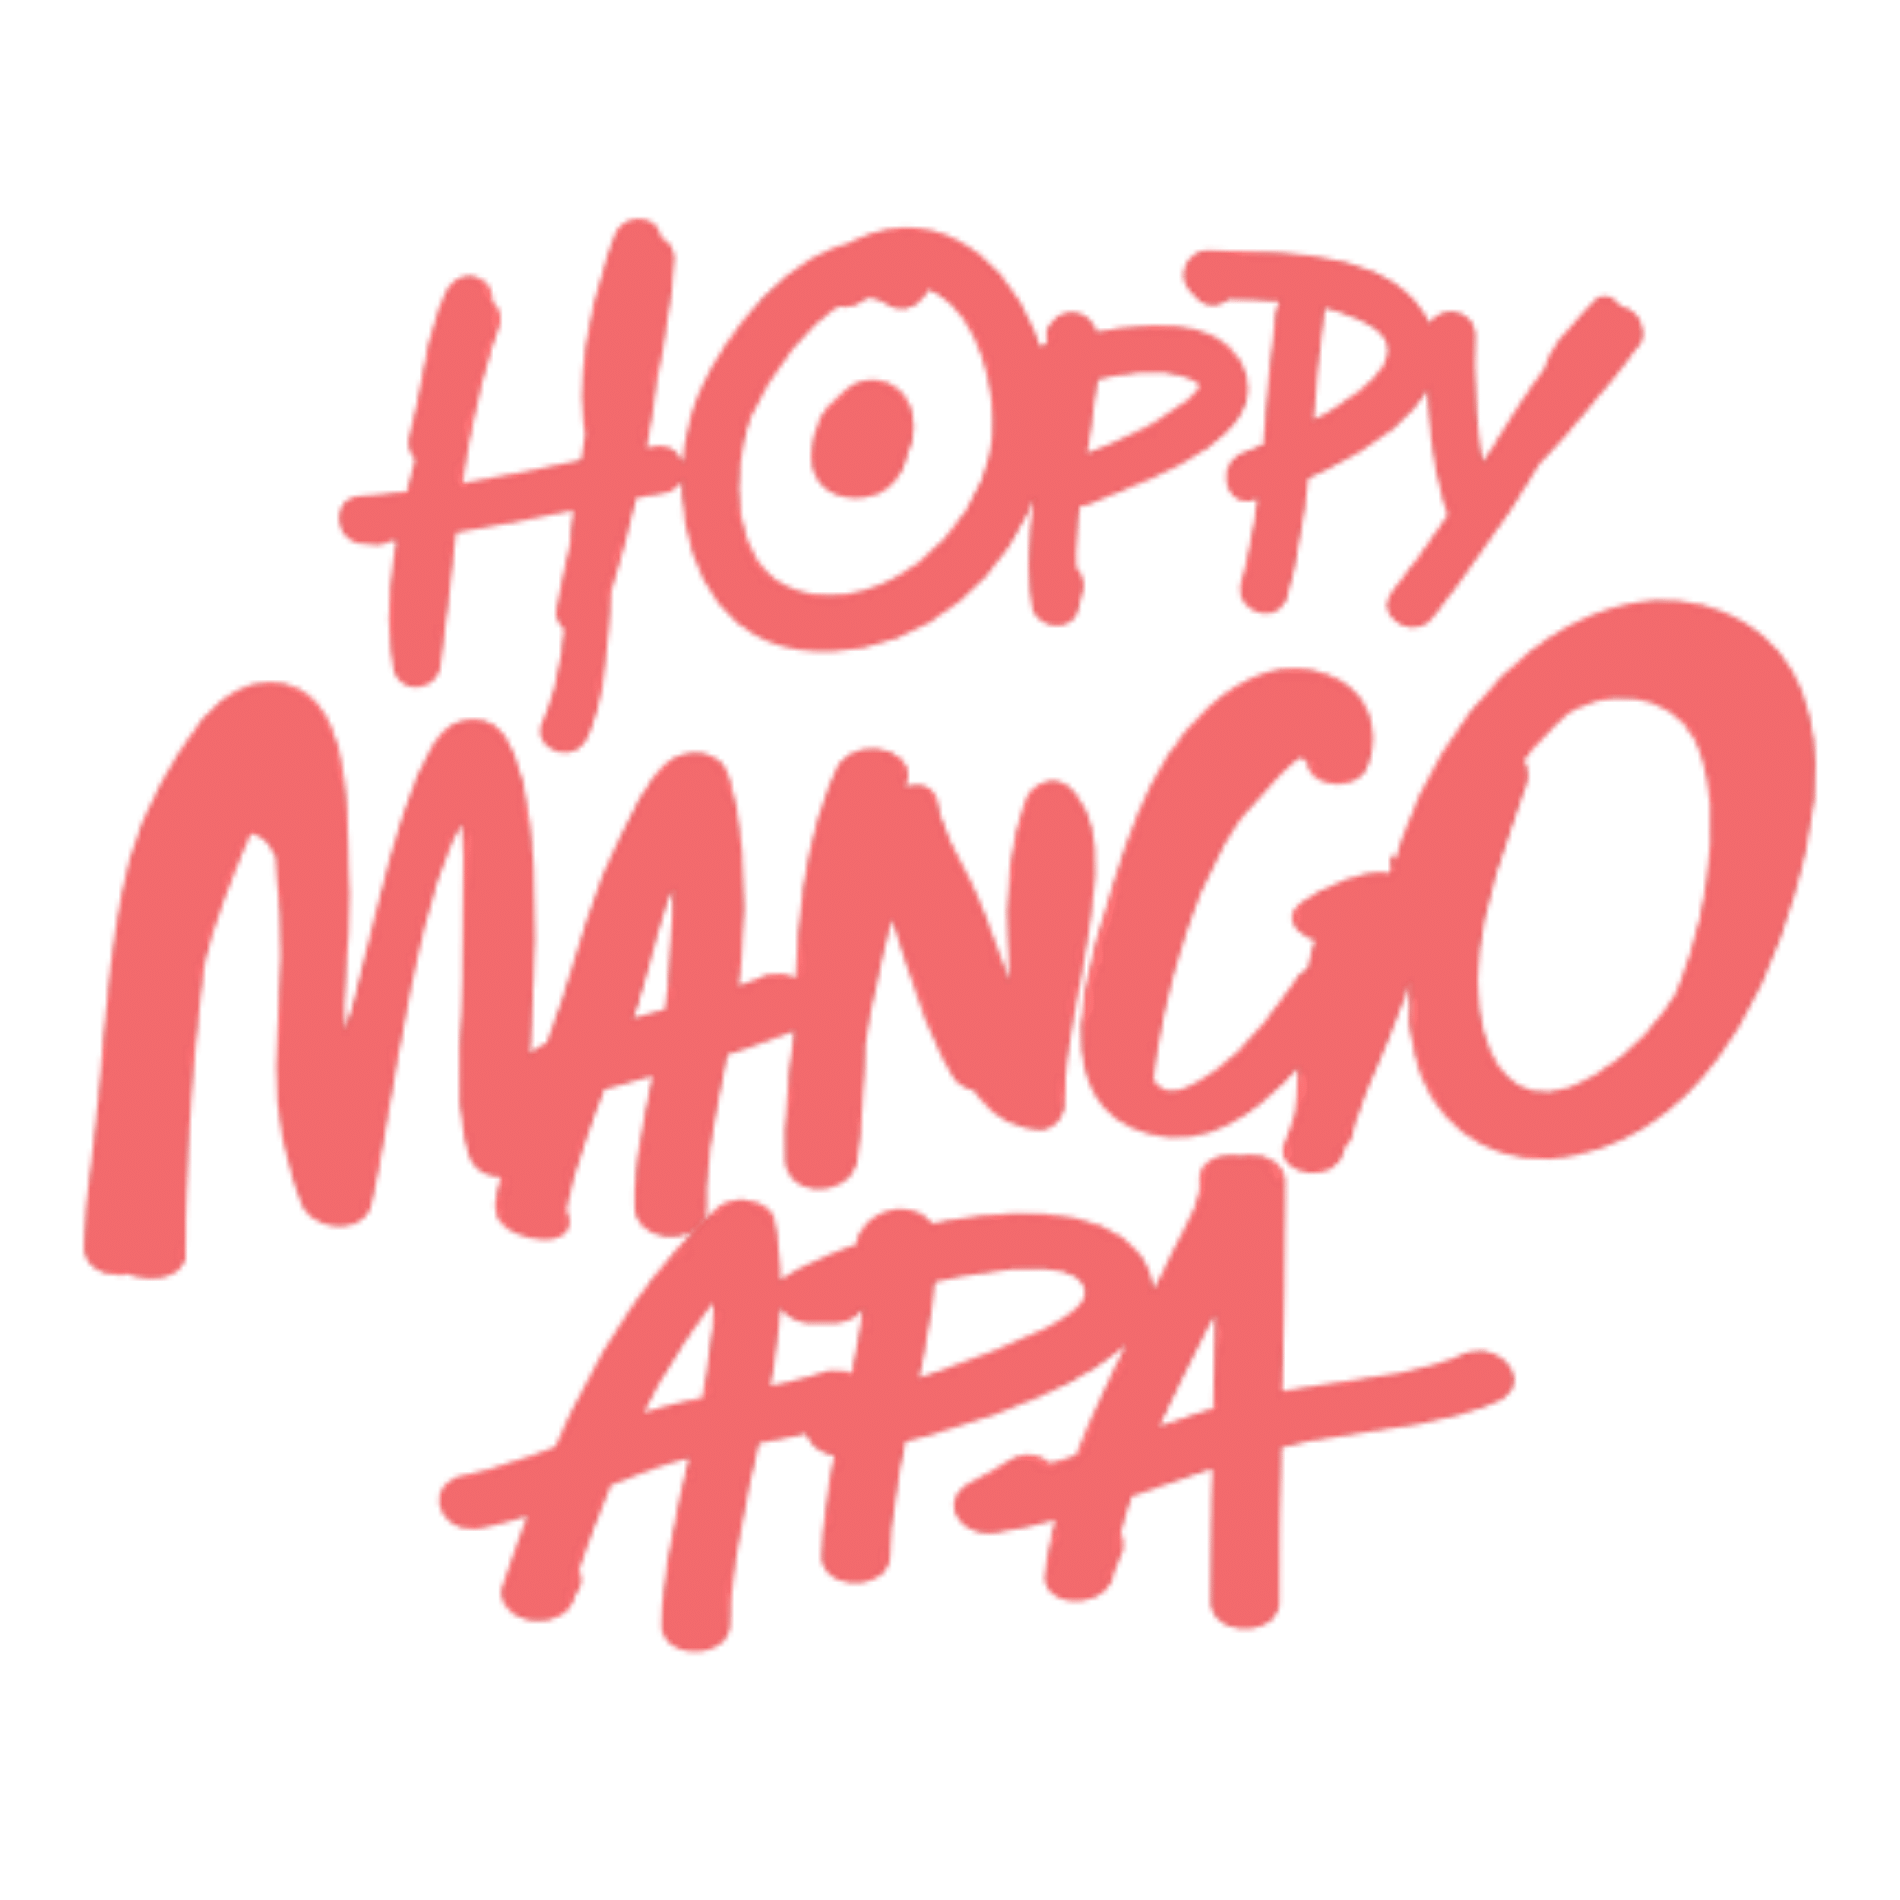 Hop For fun - Hoppy Mango Apa